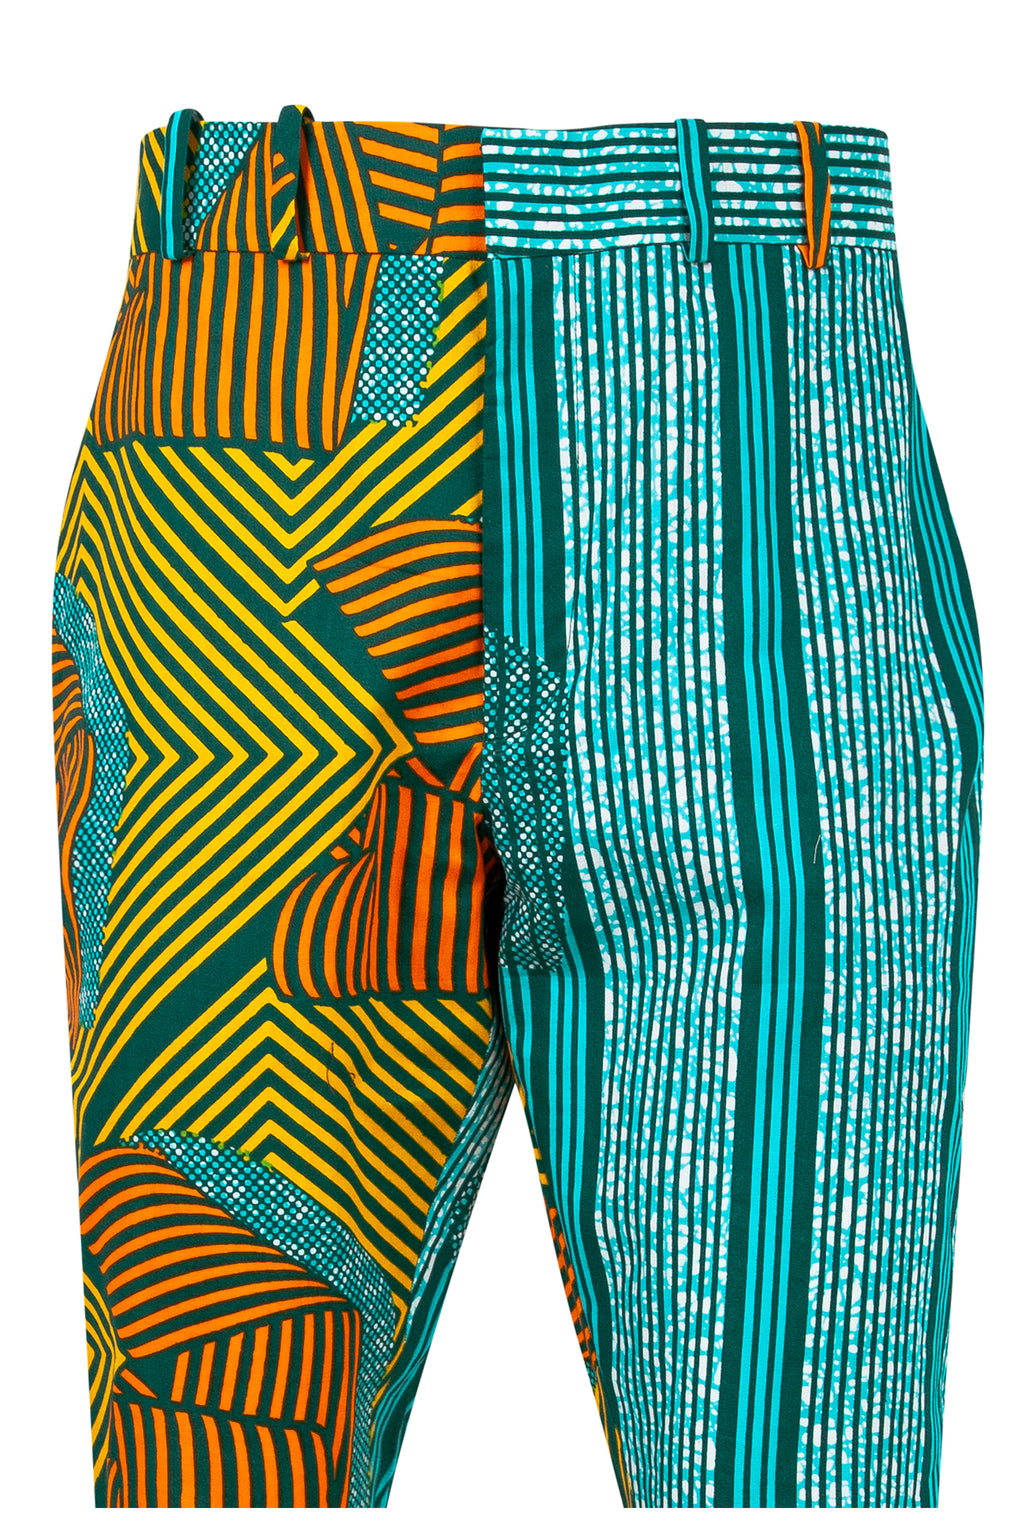 Jamie Men's African print fitted shorts-Asso